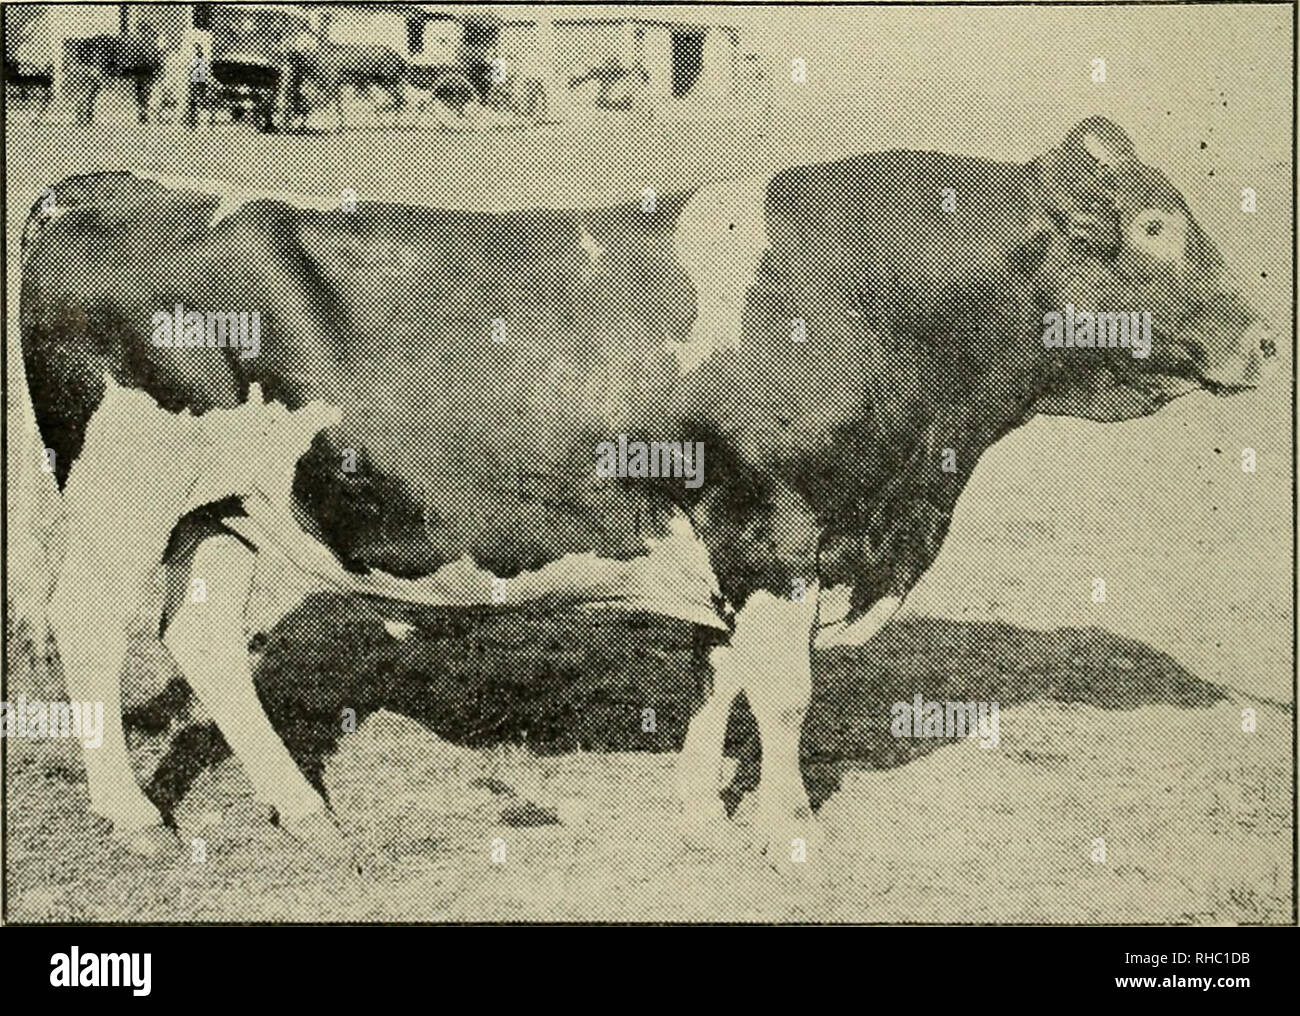 . The book of live stock champions. Livestock. IMP. MEDDLER—A THOROUGHBRED BAY HORSE. Leading winning sire in the racing seasons of 1904 and 190 6. Then owned by Clarence H. Mackay, Kingston Stud, Lexington, Ky.. GOLDEN BEN GUERNSEY BULL, SIX YEARS OLD. Weighs L,625 pounds. The picture was taken at the Wisconsin Stale Fair. win-re he had just won the championship. GOLDEN HEN was sired by Ben Sampson, r>,480, and his dam is Nellie B.. 12,305. We are in- formed by the owners and exhibitors, Messrs. A. W. & F. E. Fox, of Waukesha, Wis., that this great bull has a fine and gentle dispositio - Stock Image